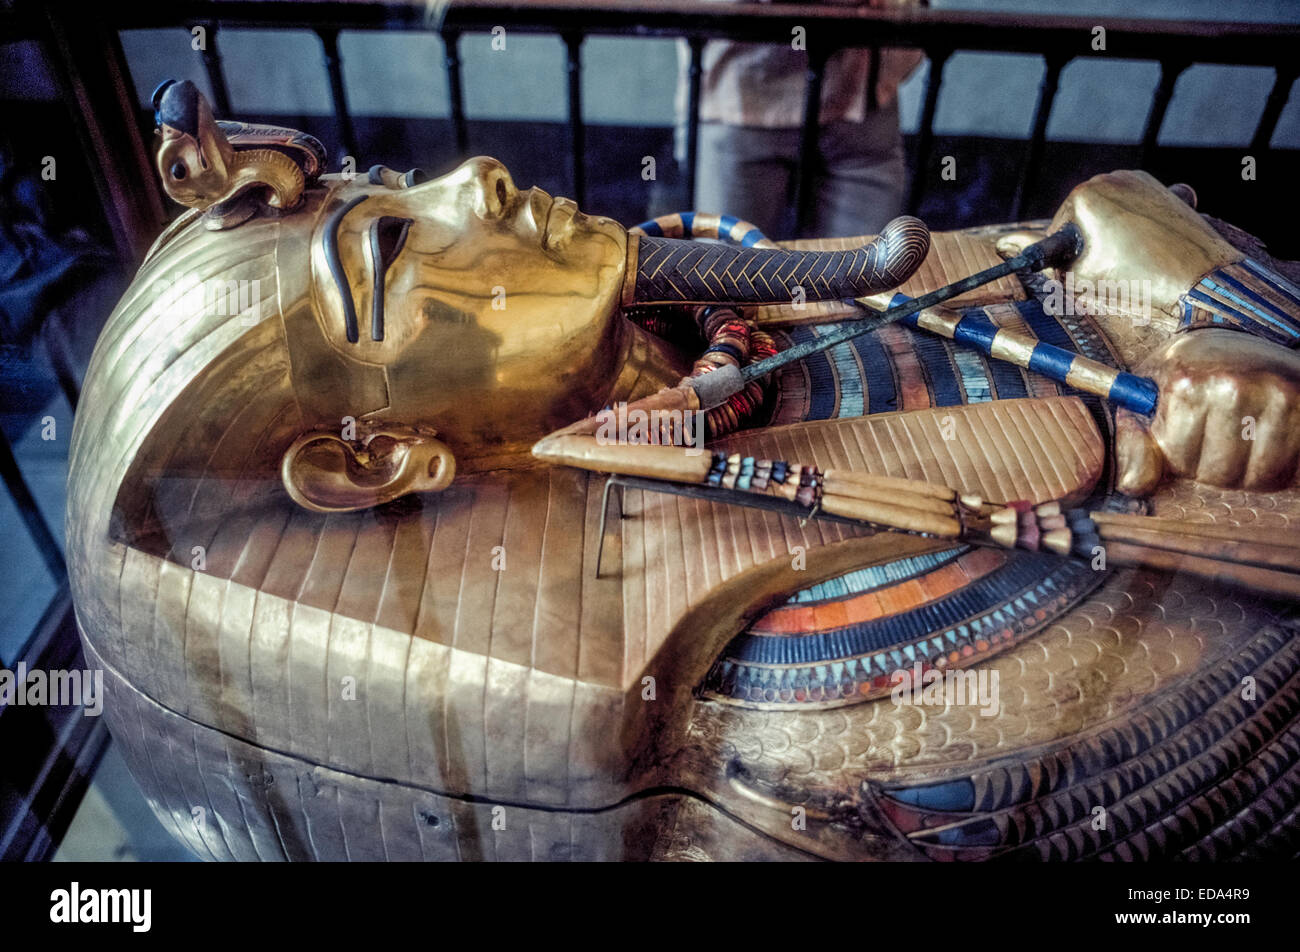 The sarcophagus (coffin) of the famed pharaoh Tutankhamun (King Tut) is on display at the Museum of Egyptian Antiquities - Stock Image